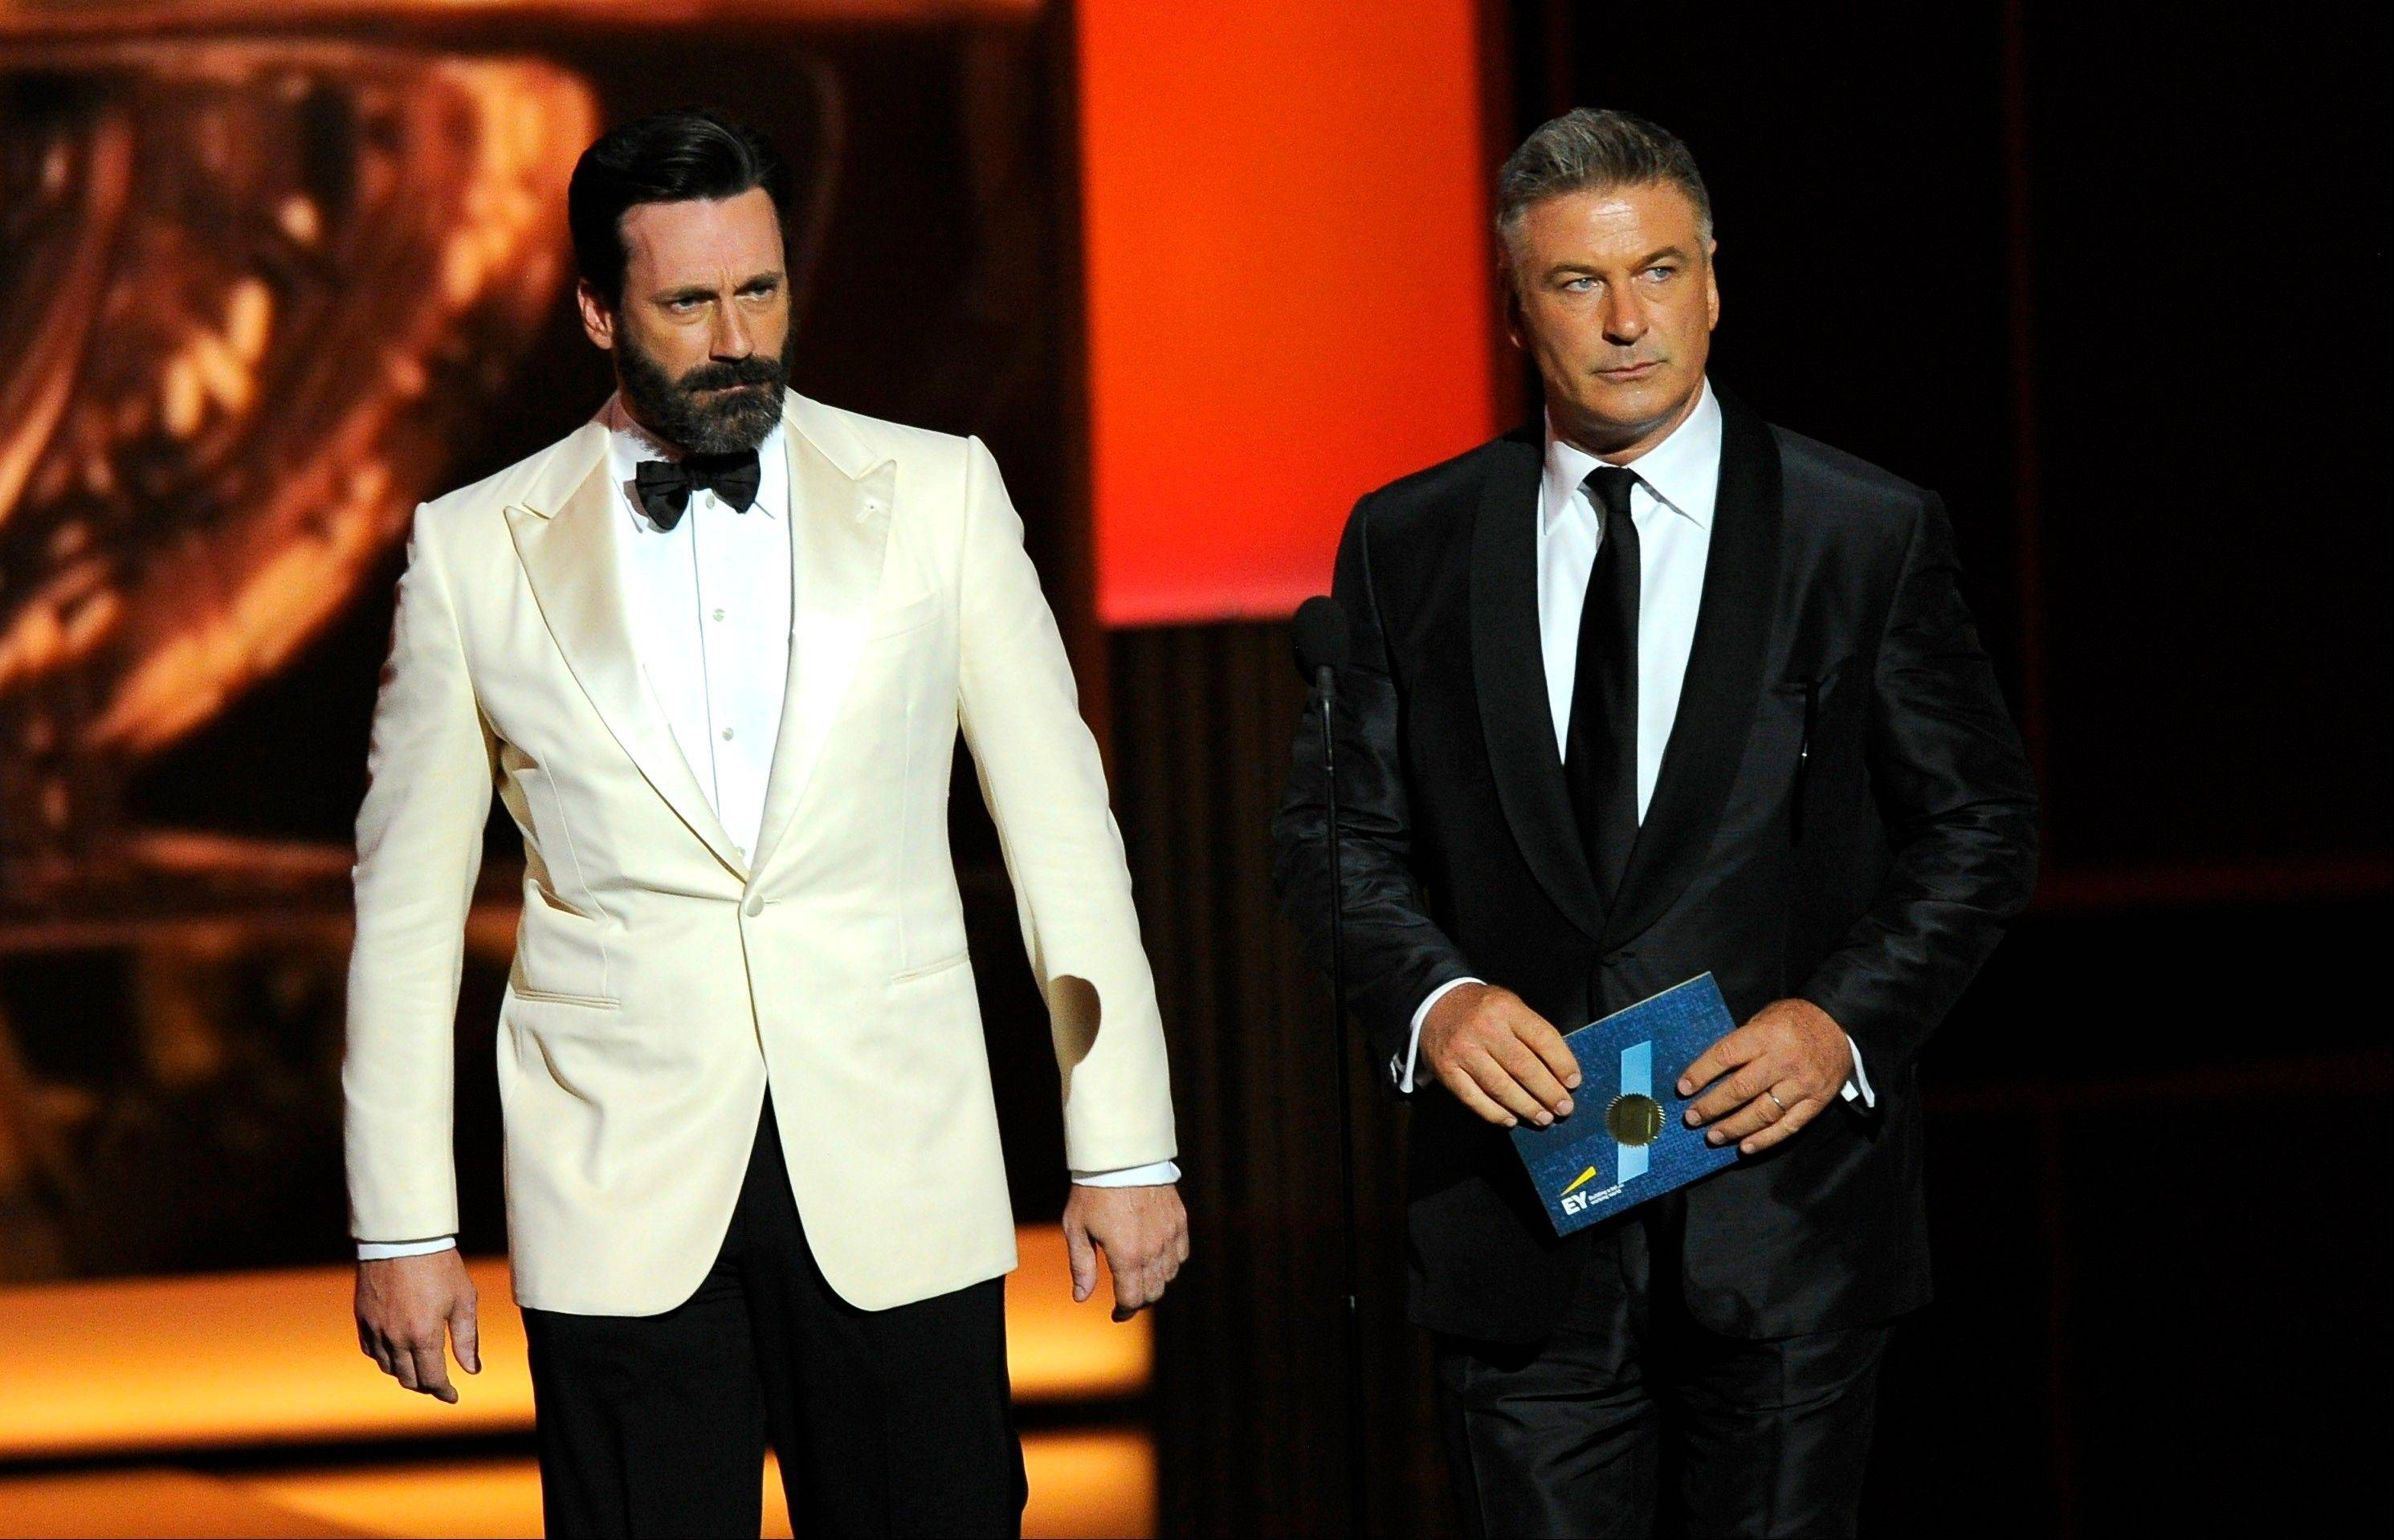 Jon Hamm, left, and Alec Baldwin present the award for outstanding lead actress in a comedy series onstage at the 65th Primetime Emmy Awards at Nokia Theatre, in Los Angeles. Much to Hamm's surprise, it was his new facial hair that made headlines the following day.